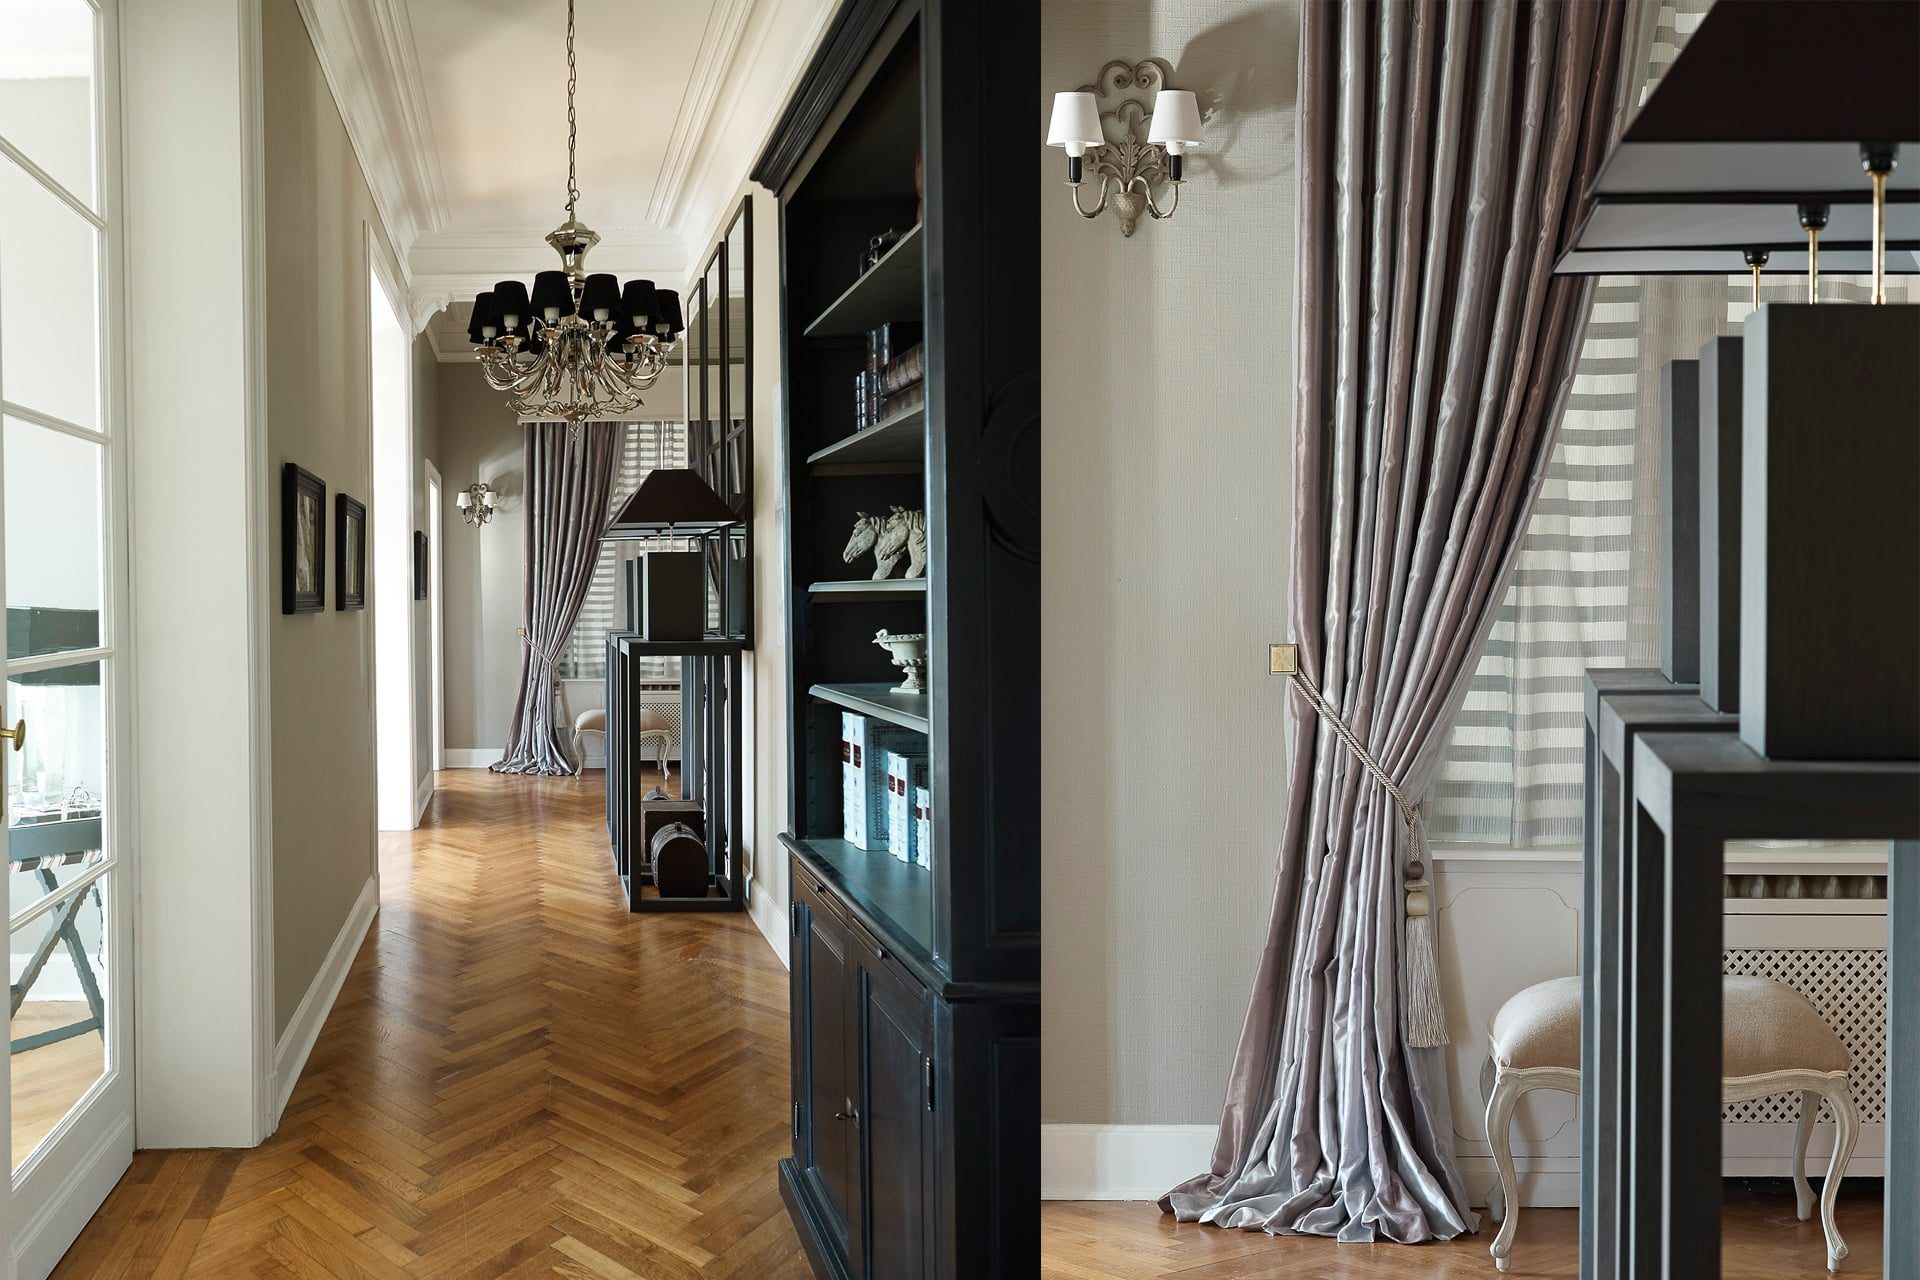 Marcotte Style U2013 Exclusive Home Interiors, Tailor Made Interiors   Total Interior  Design